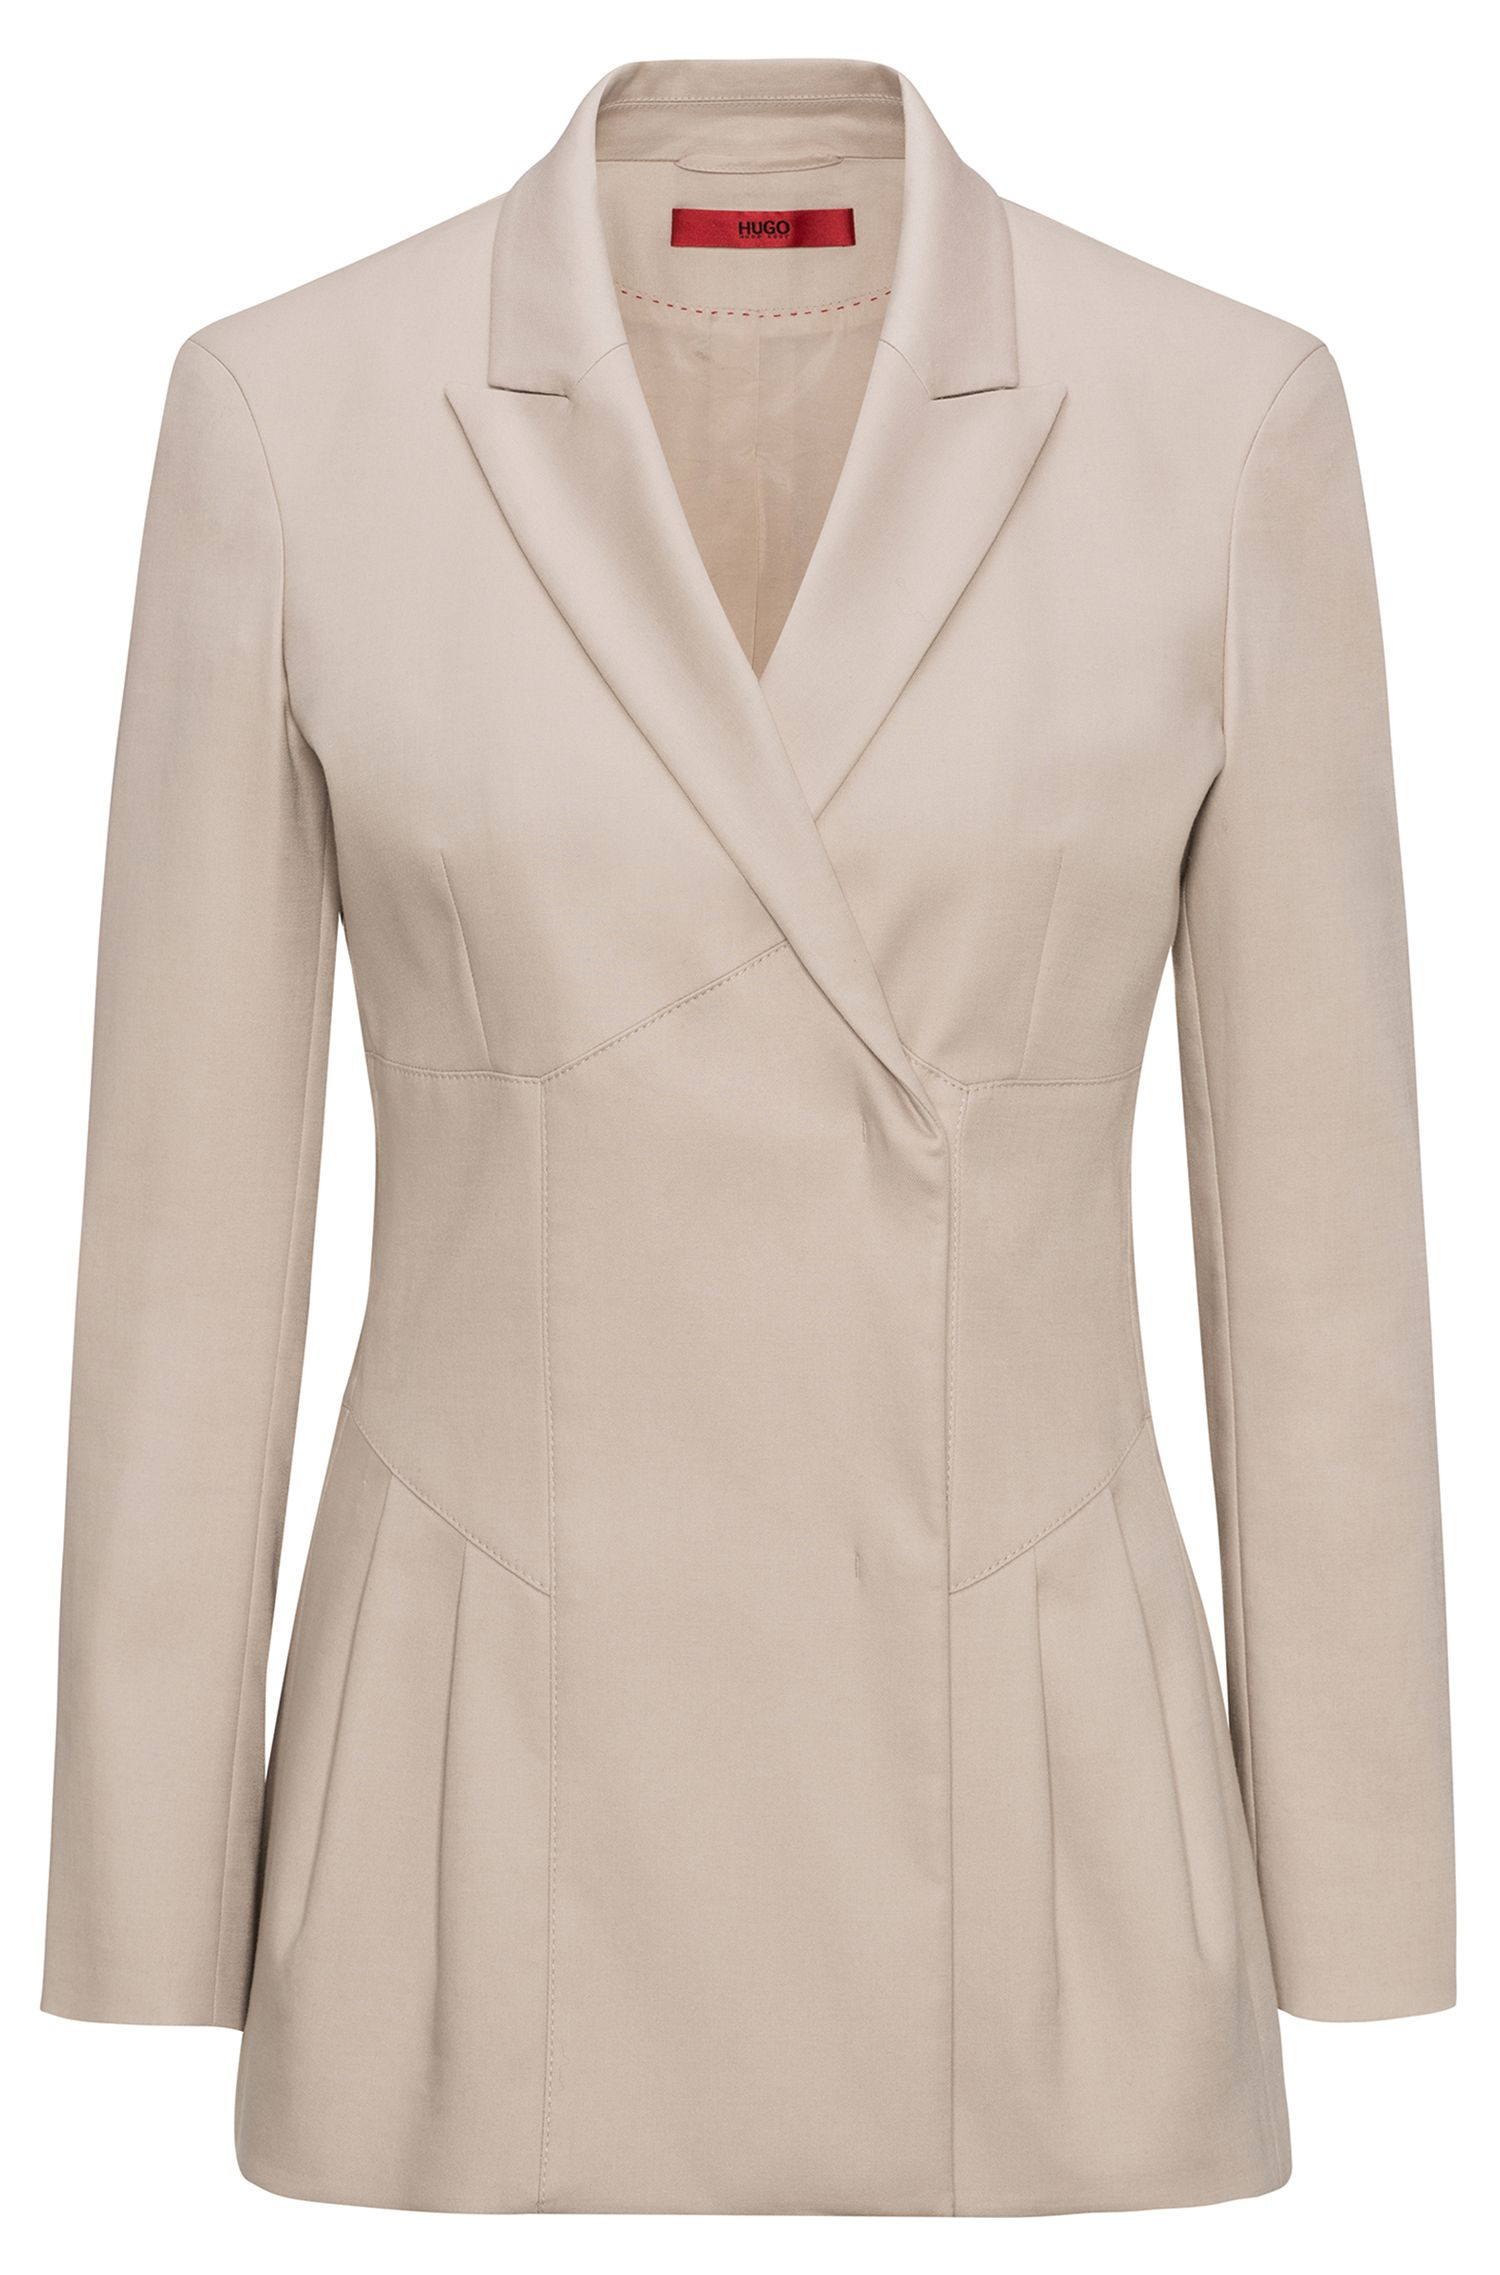 Pleat detail jacket in stretch-cotton gabardine